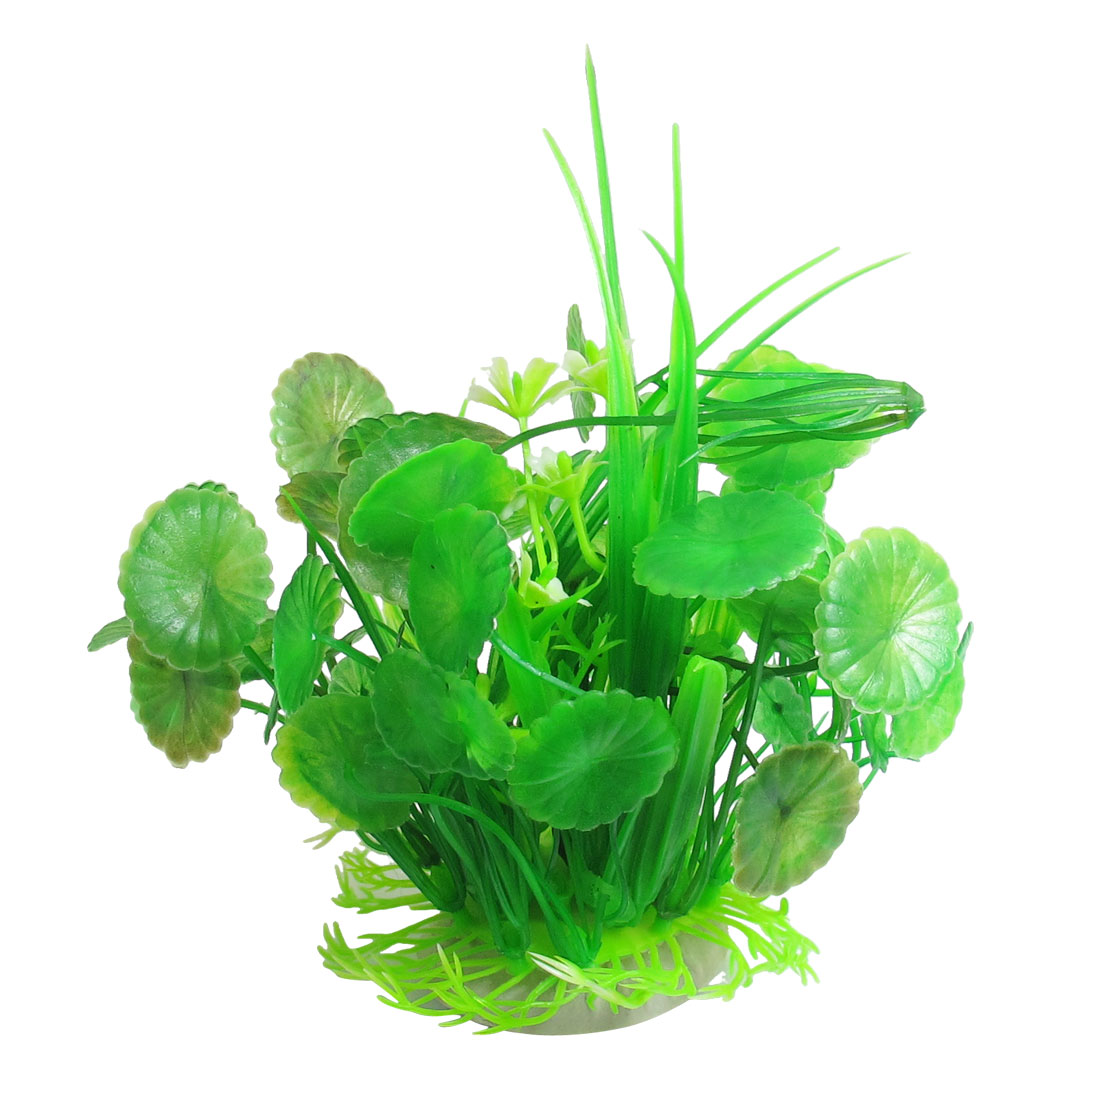 "Aquarium Green Manmade Water Grass Plants Decoration 6.3"" Height"